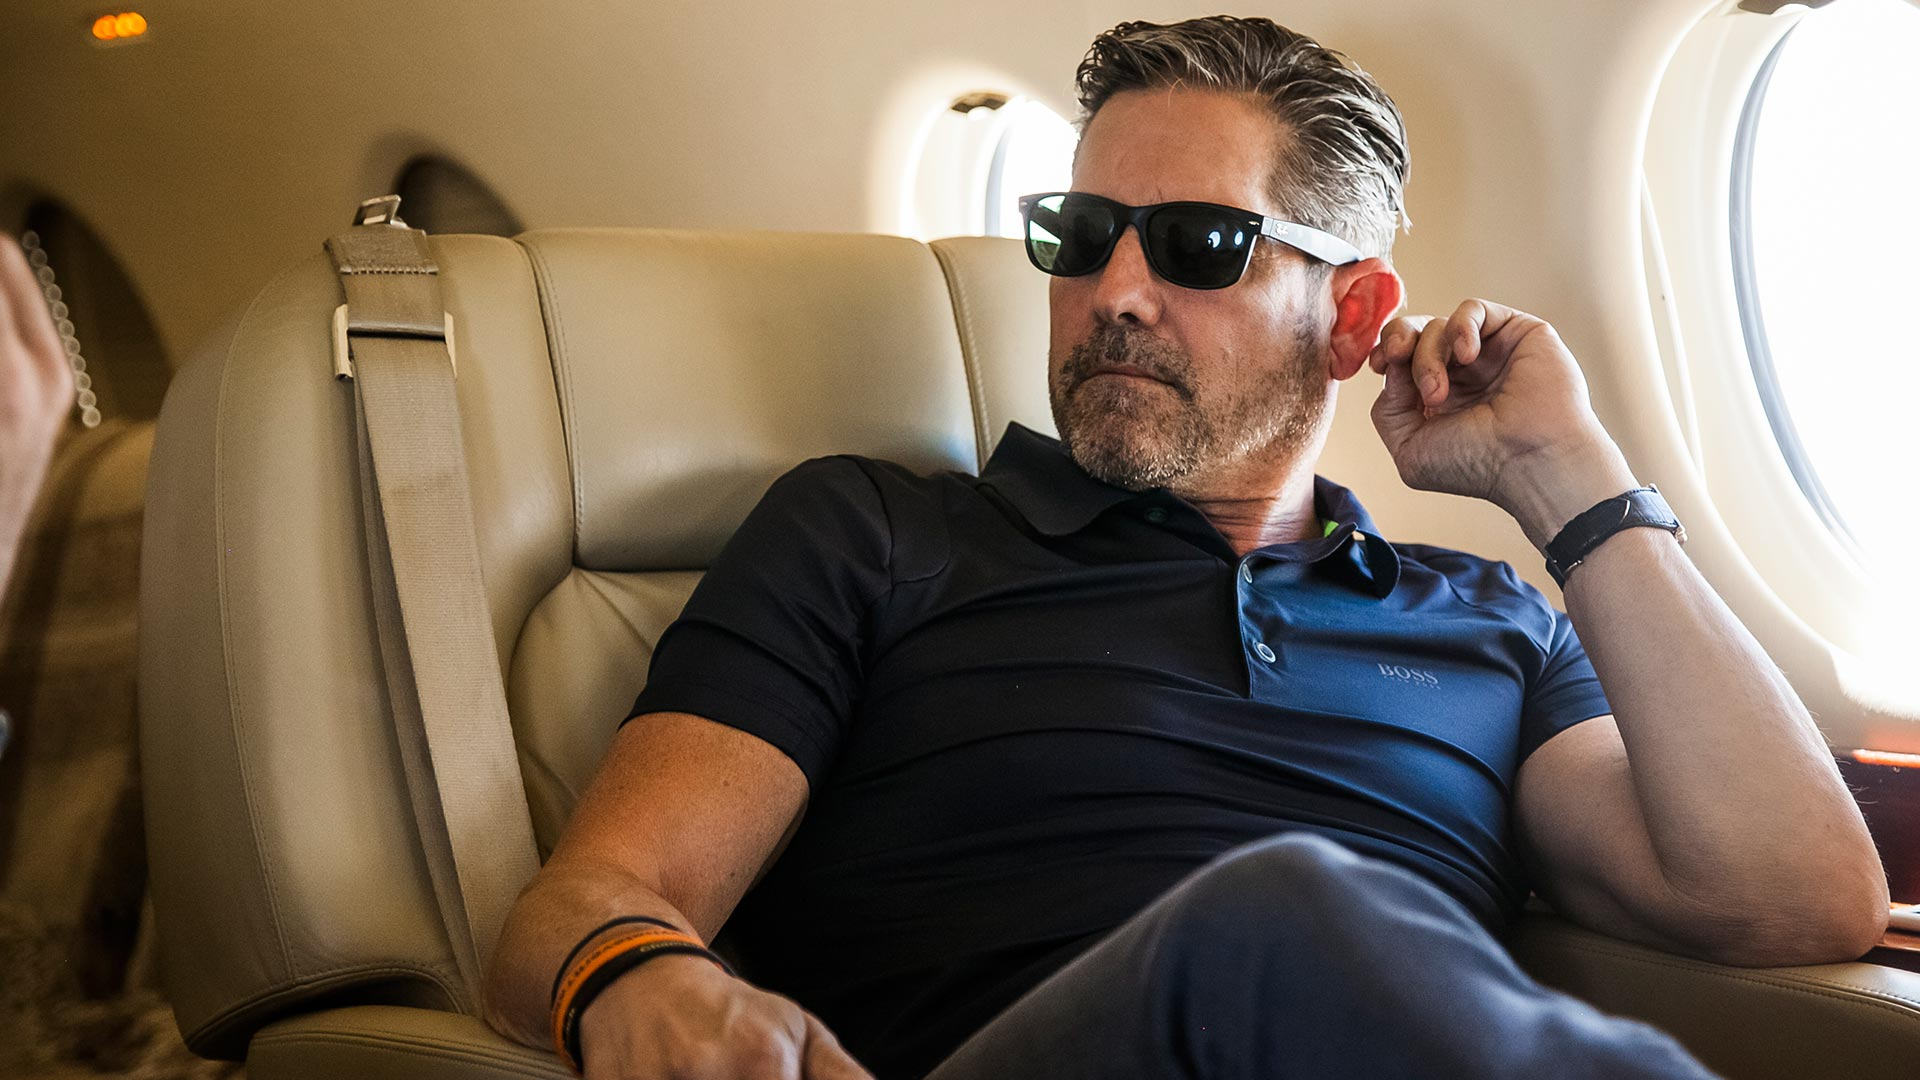 The Top 28 Grant Cardone Quotes That Will Motivate and Inspire You ...